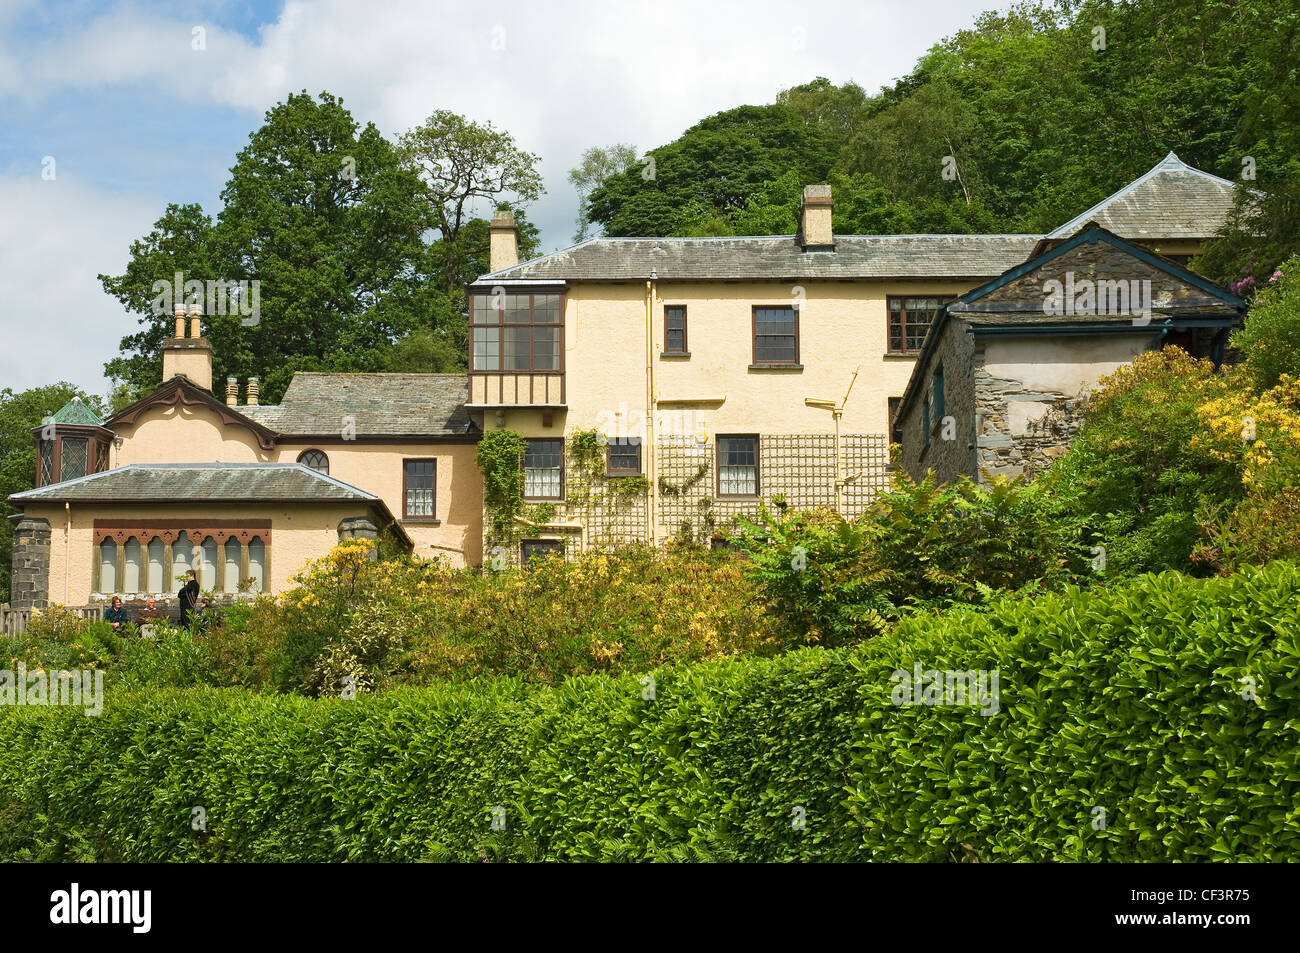 Brantwood the former home of John Ruskin (19th century artist and writer), is both a treasure house of historical - Stock Image